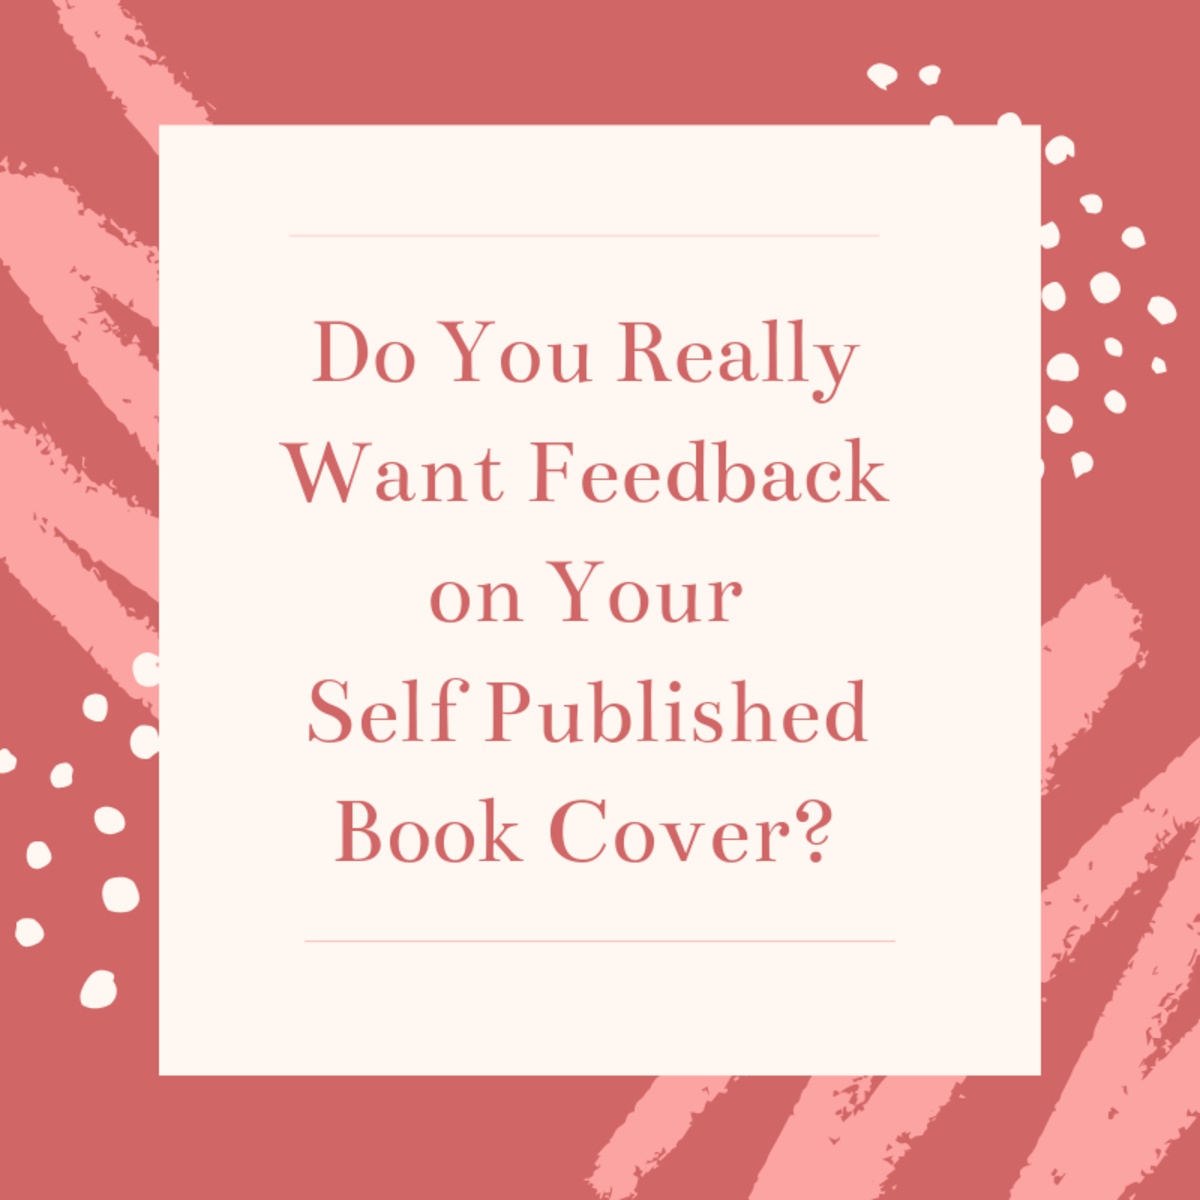 Do you really want feedback on your self-published book cover?